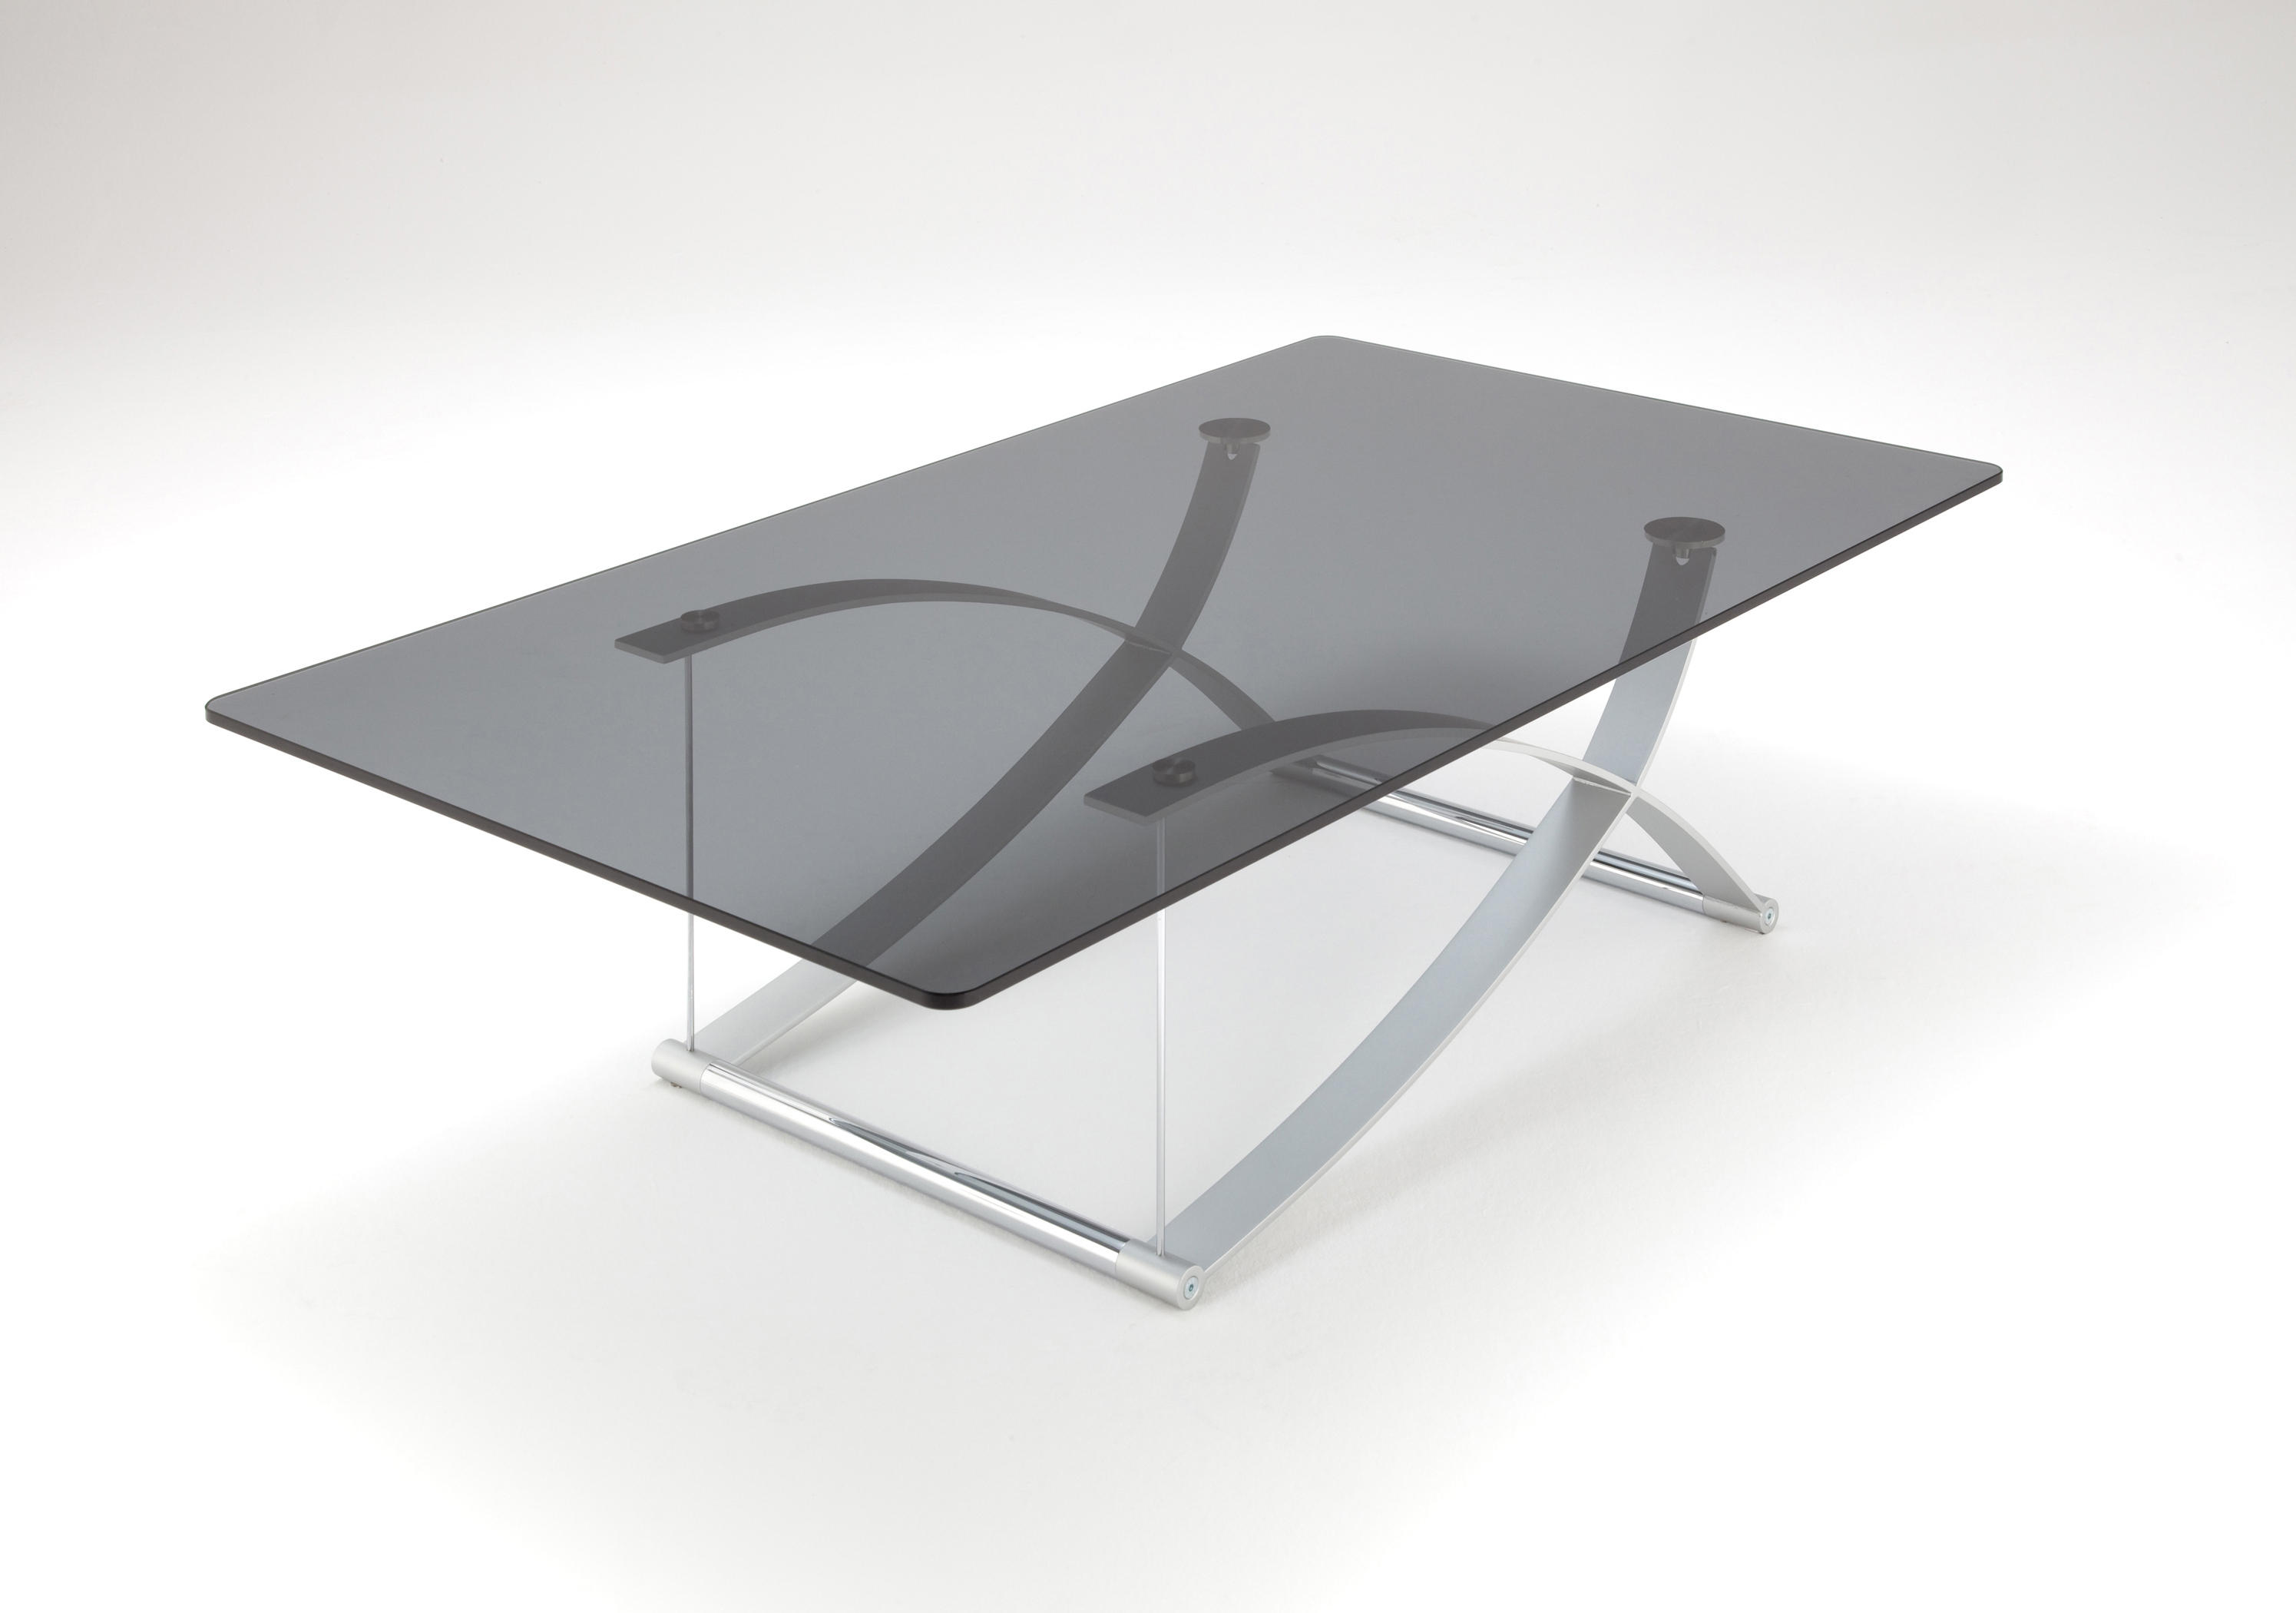 rolf benz 1150 lounge tables from rolf benz architonic. Black Bedroom Furniture Sets. Home Design Ideas